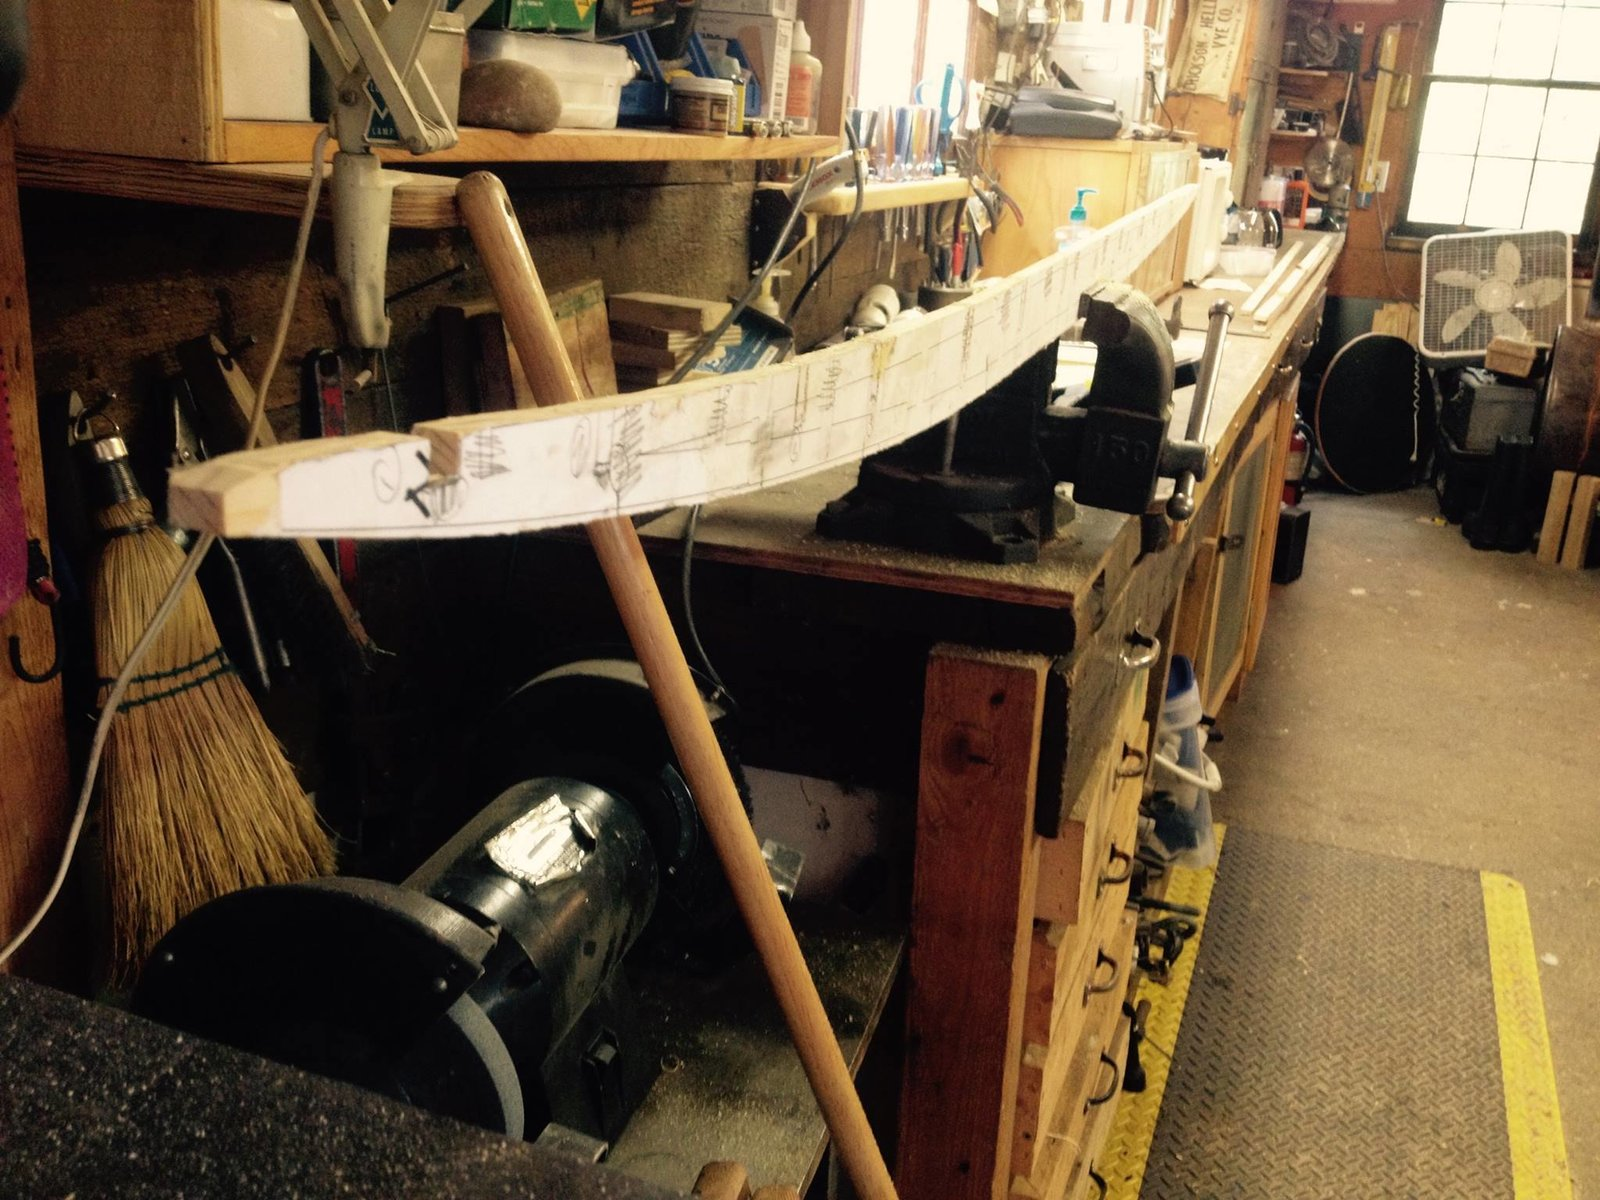 The  Photo 8 of 26 in Crafting a Hollow Wood Surfboard from Old-Growth Redwood